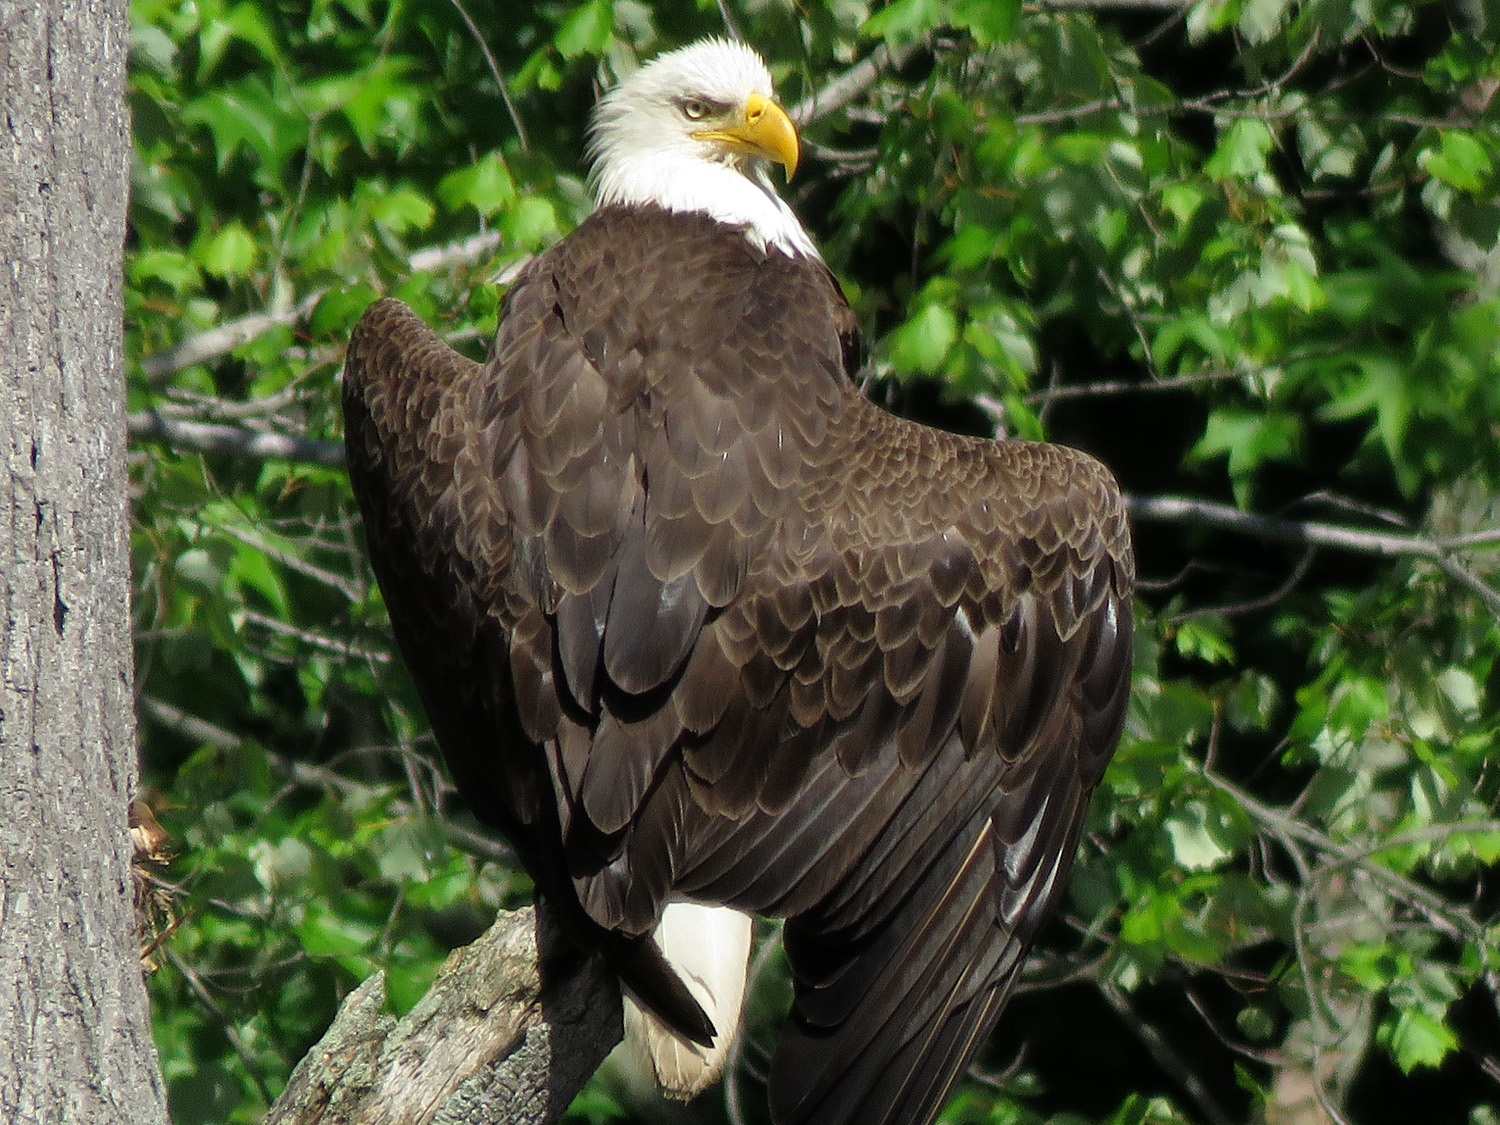 The eagle was perched on this branch for 2 1/2 hours, June 9, 2019.